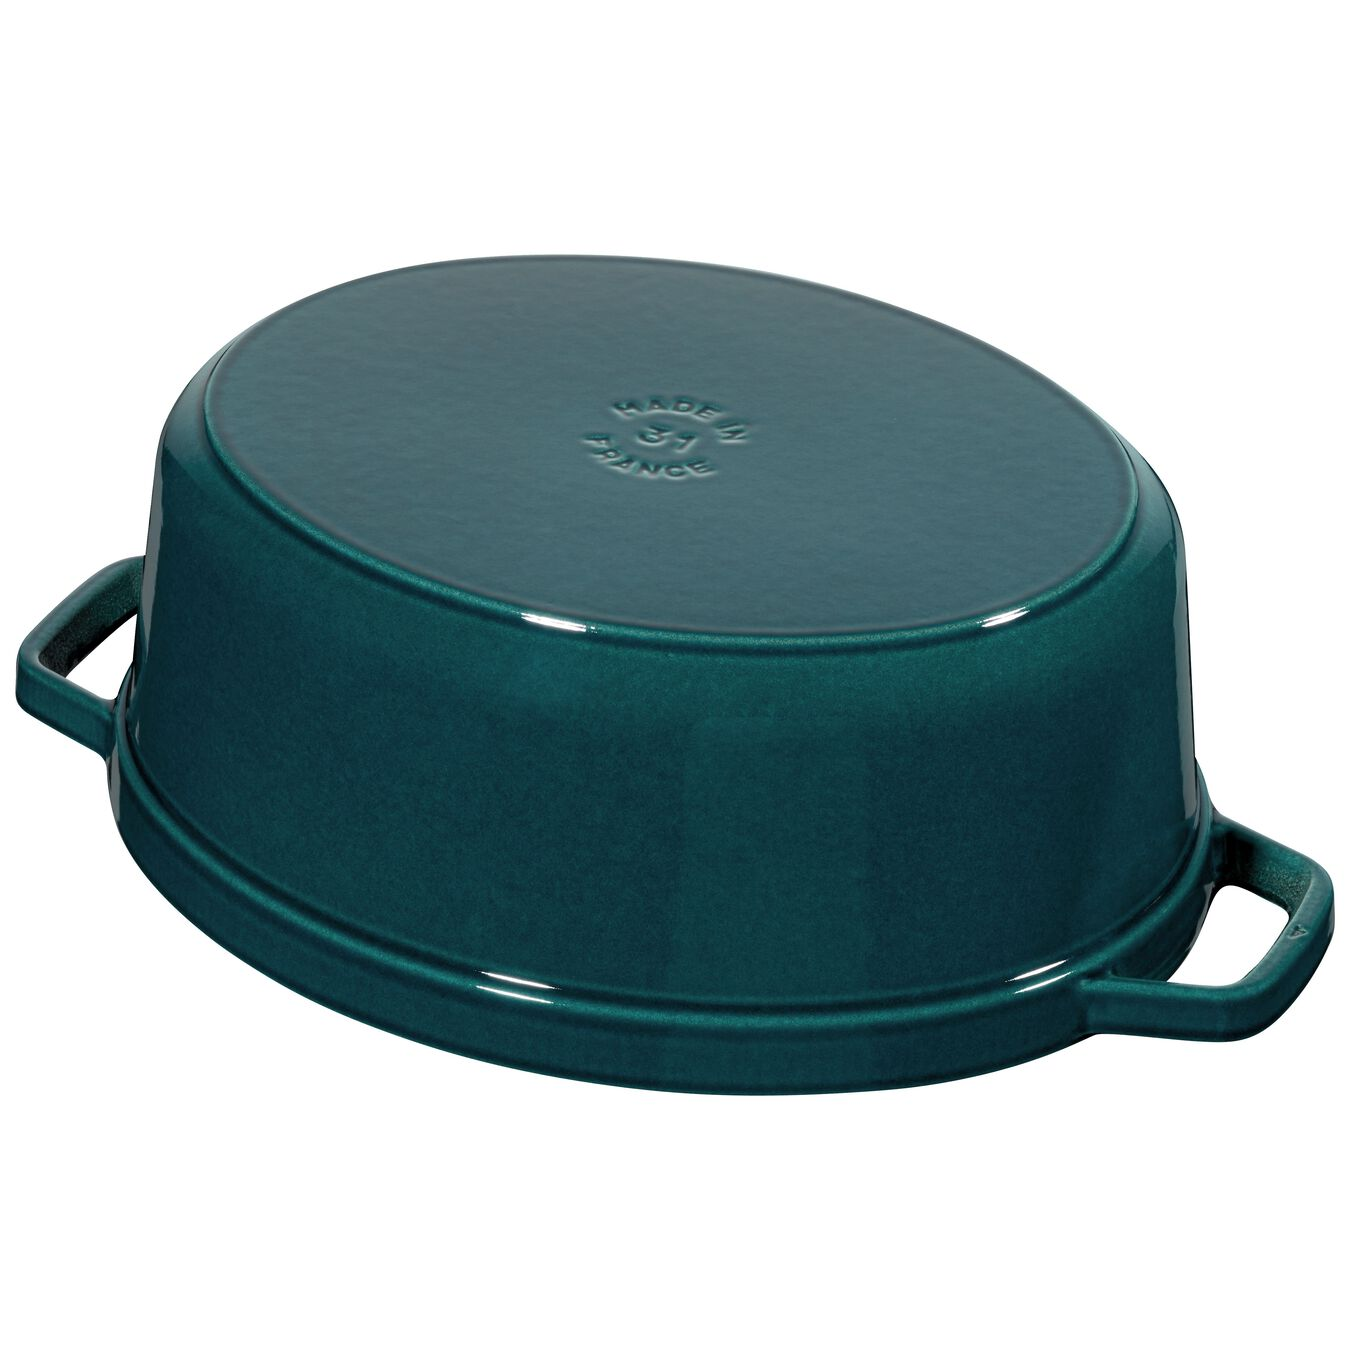 186-oz, oval, Cocotte, la mer - Visual Imperfections,,large 5